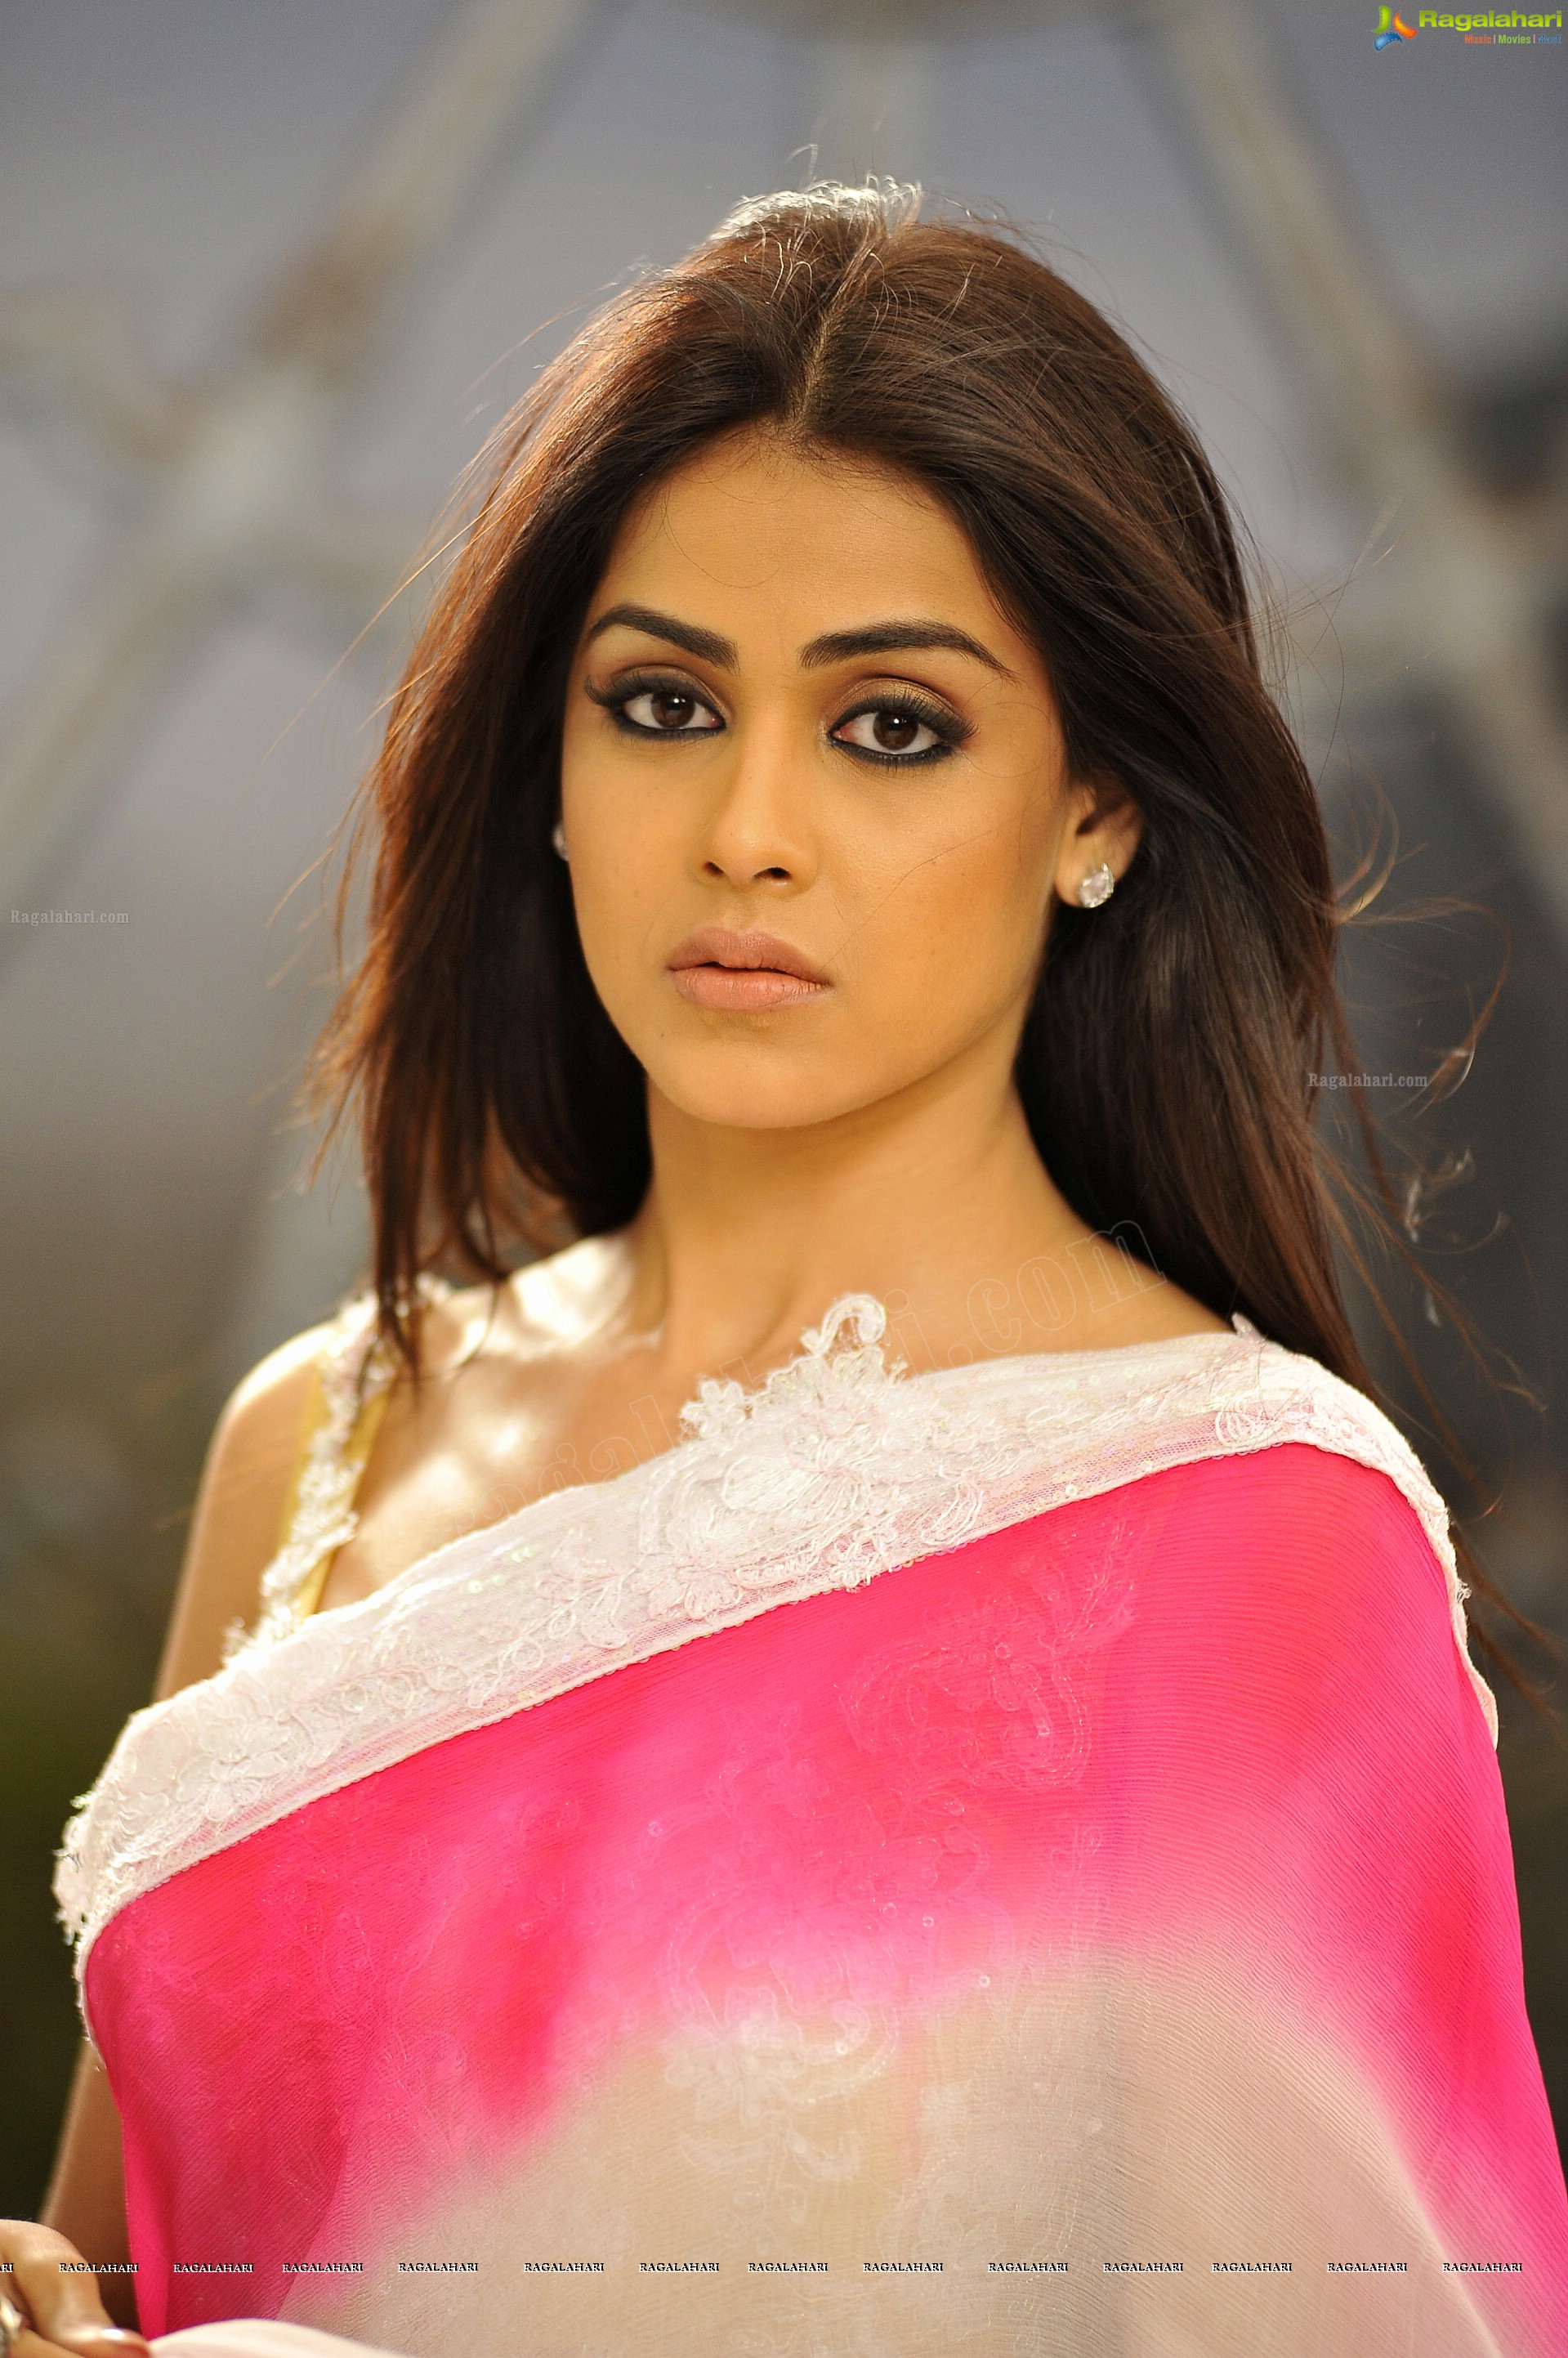 genelia (hd) image 50 | tollywood actress stills,stills, heroines